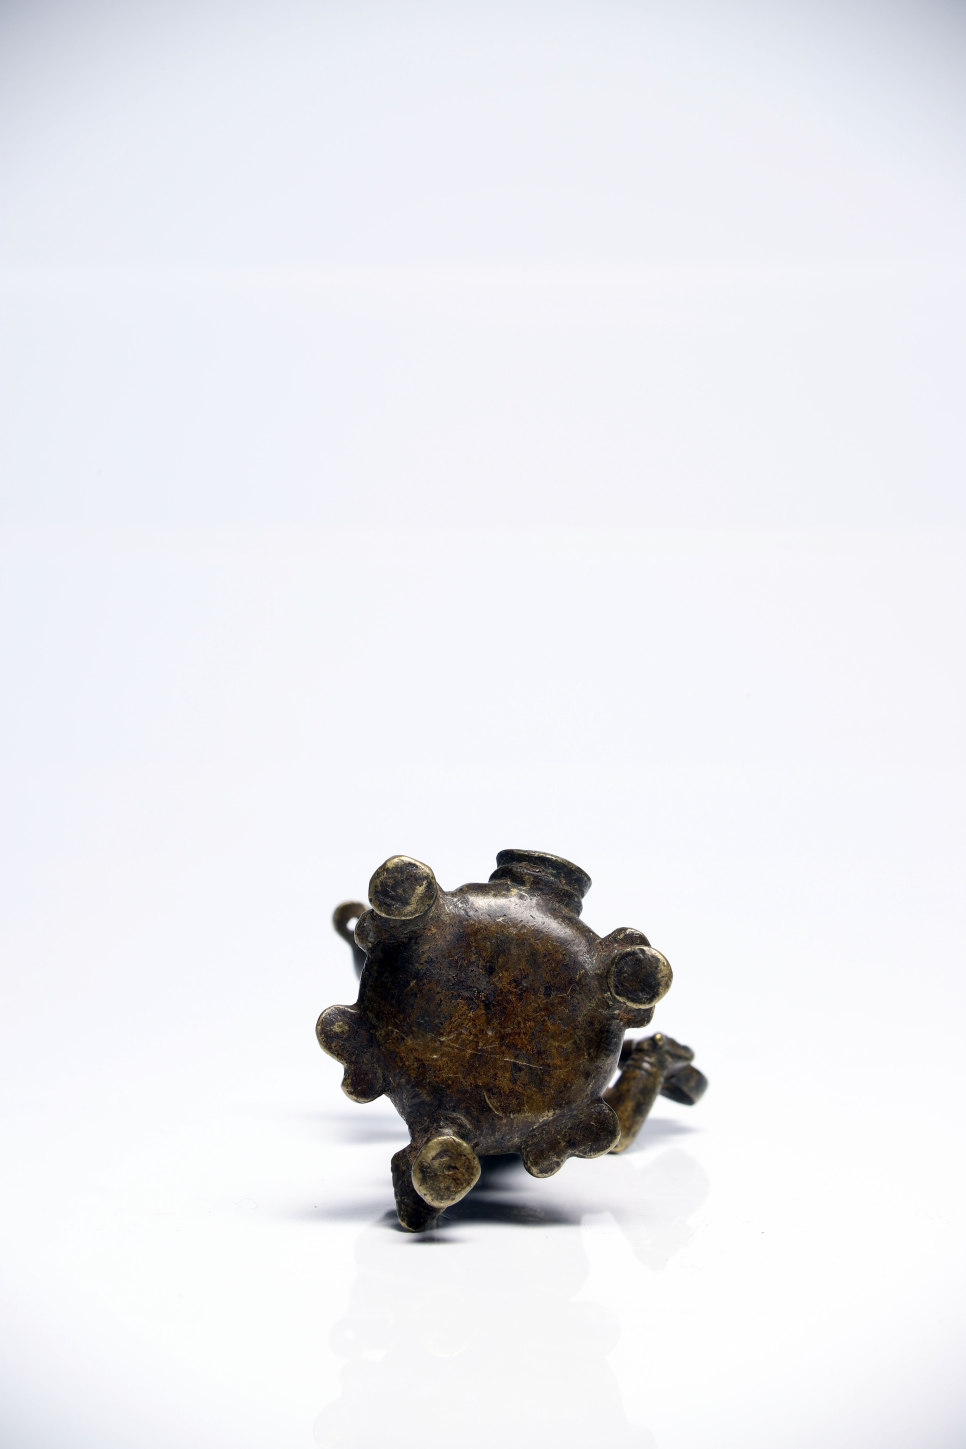 Lot 38 - Dipa Lakshimi oil lampBronzeSouth India17th ctH: 12 cm Dipa Lakshimi is the goddess of fertility and